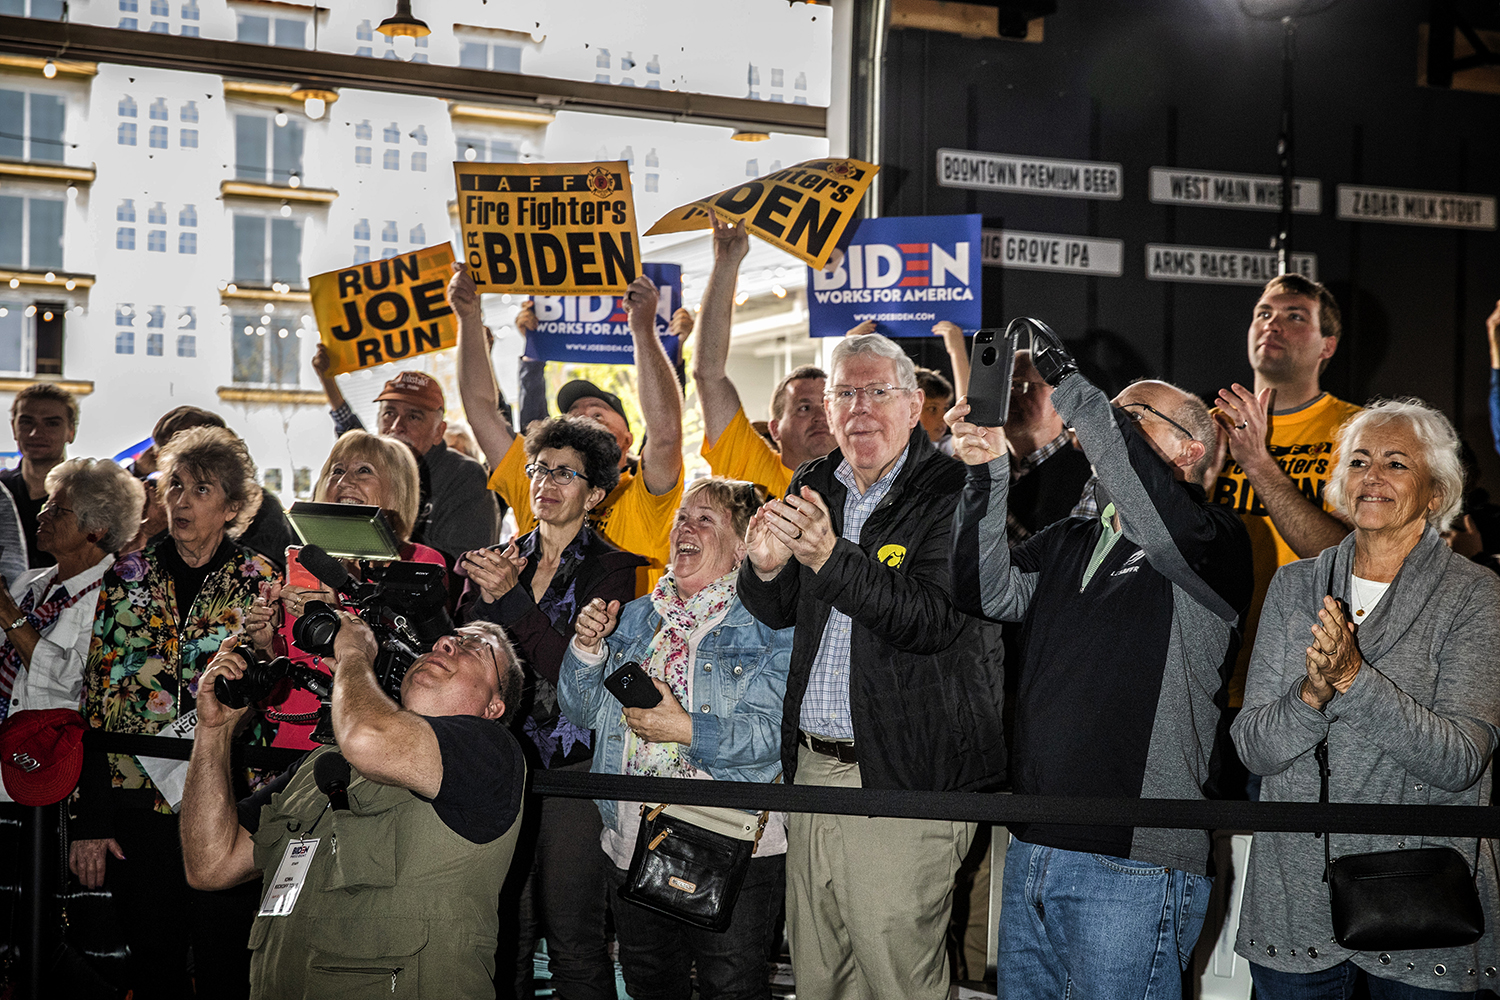 Attendees cheer for Former Vice President and 2020 Democratic Presidential candidate Joe Biden at Big Grove Brewery in Iowa City on Wednesday, May 1, 2019. Iowa City was the second stop on the Iowa Kickoff Tour for the Biden campaign.